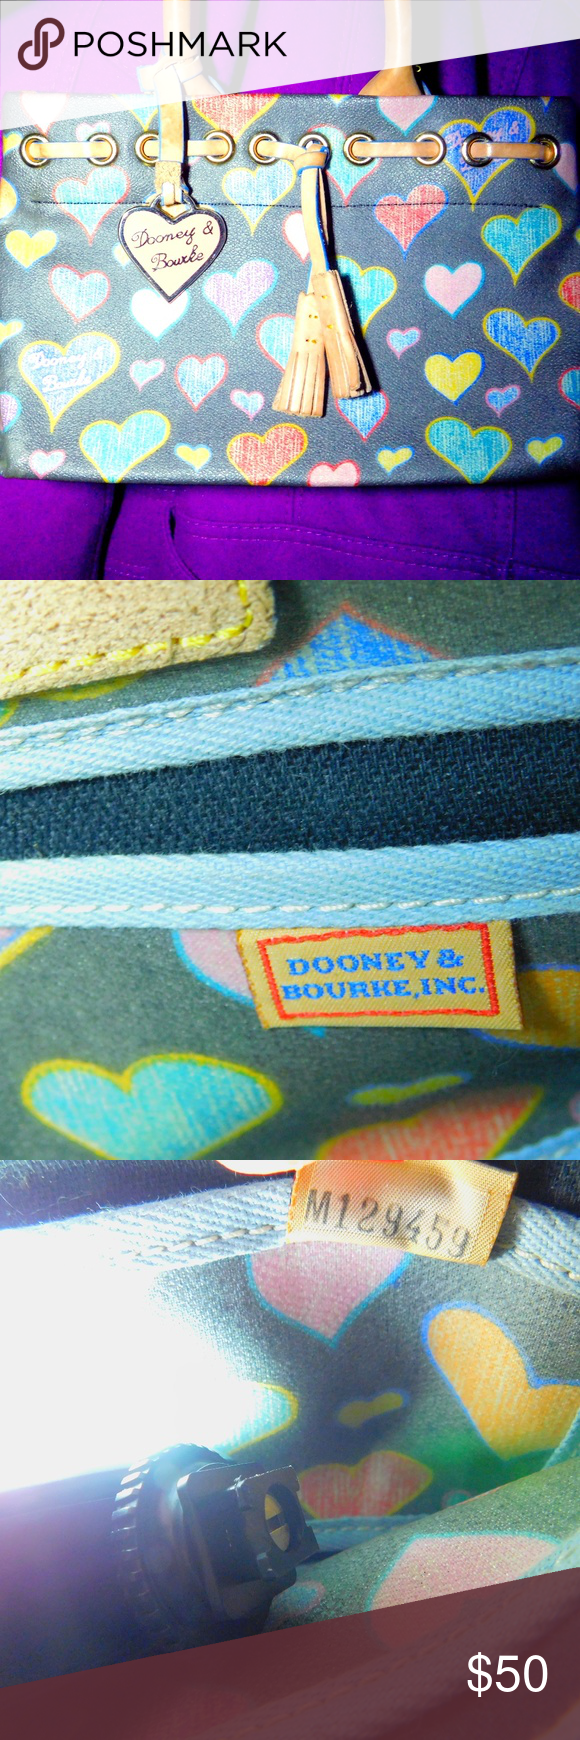 Dooney & Bourke Signature Hearts Tassel Tote Practically new it just sat in my closet. Dooney & Bourke Signature Hearts Tassel Tote is adorbs. Its grey and has a multi colored crayon heart design a brown leather lace through top and tassels.  I love the sturdy handles and magnetic snap closure. The hearts are colored yellow, purple, blue, and pink so it goes with everything and lets not forget that super cute pink enamel heart. Dooney & Bourke Bags Totes #crayonheart